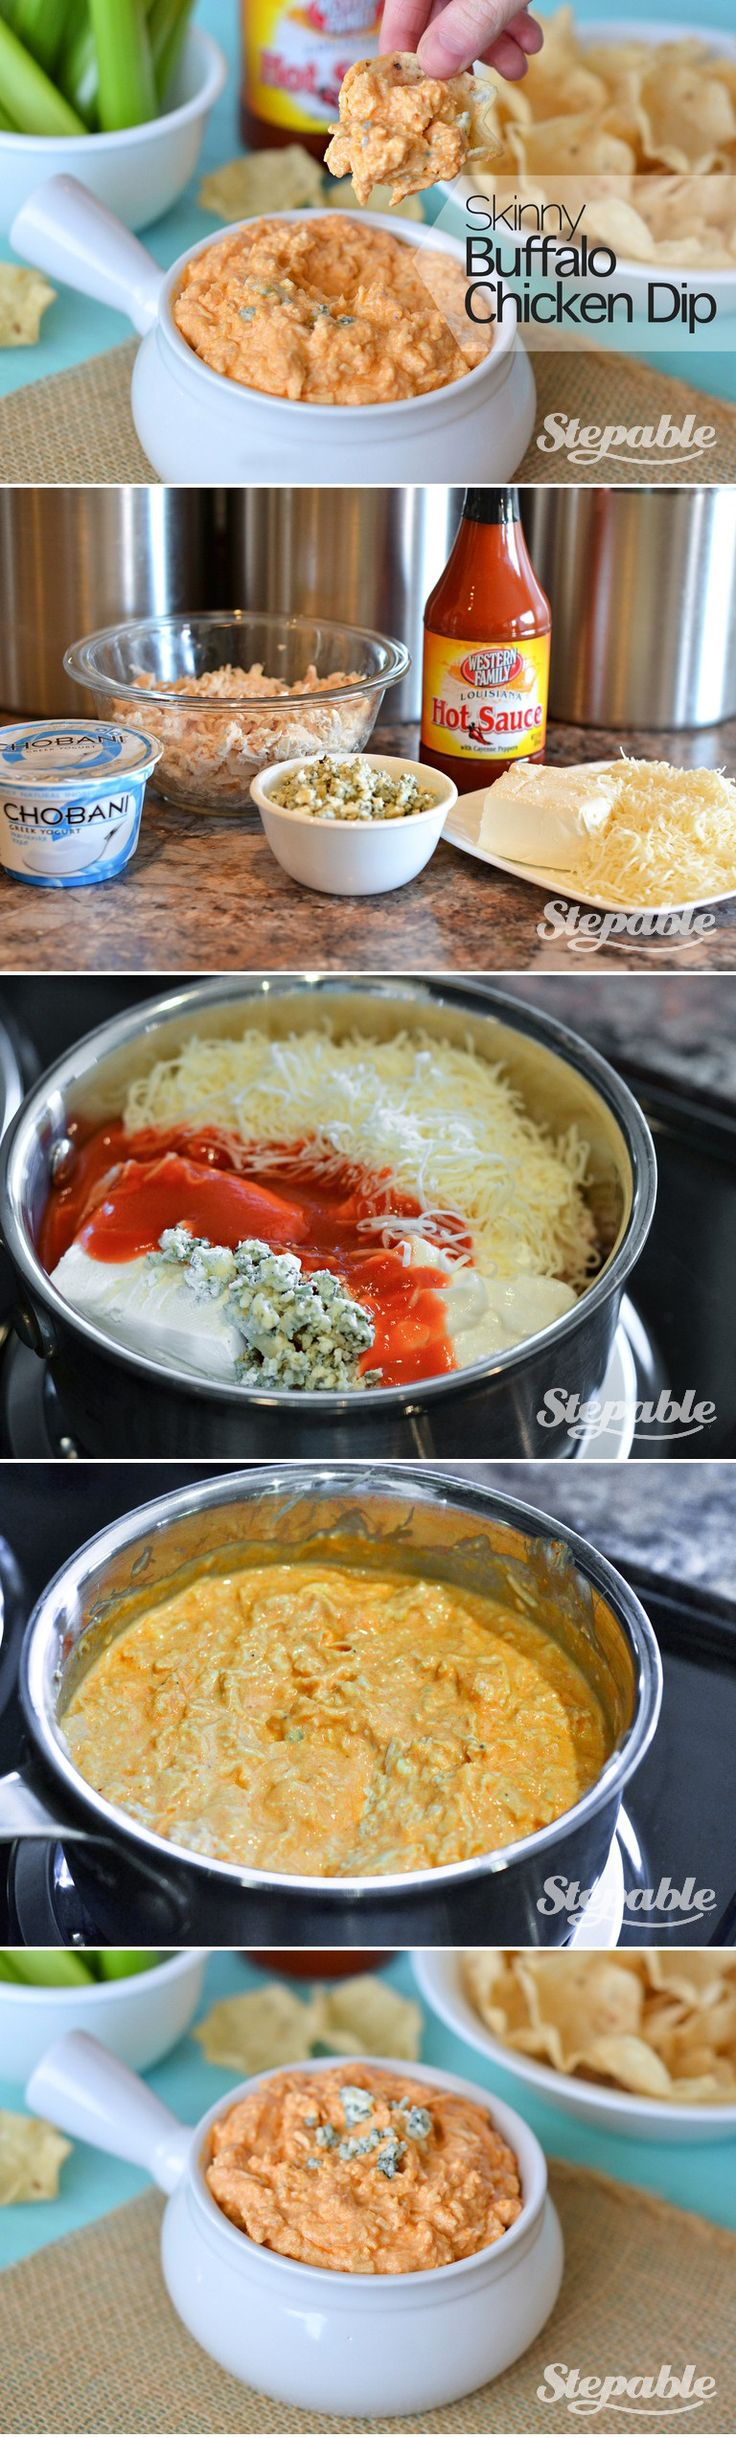 Easy peasy Skinny Buffalo Chicken Dip....made this forever ago...it's amazing